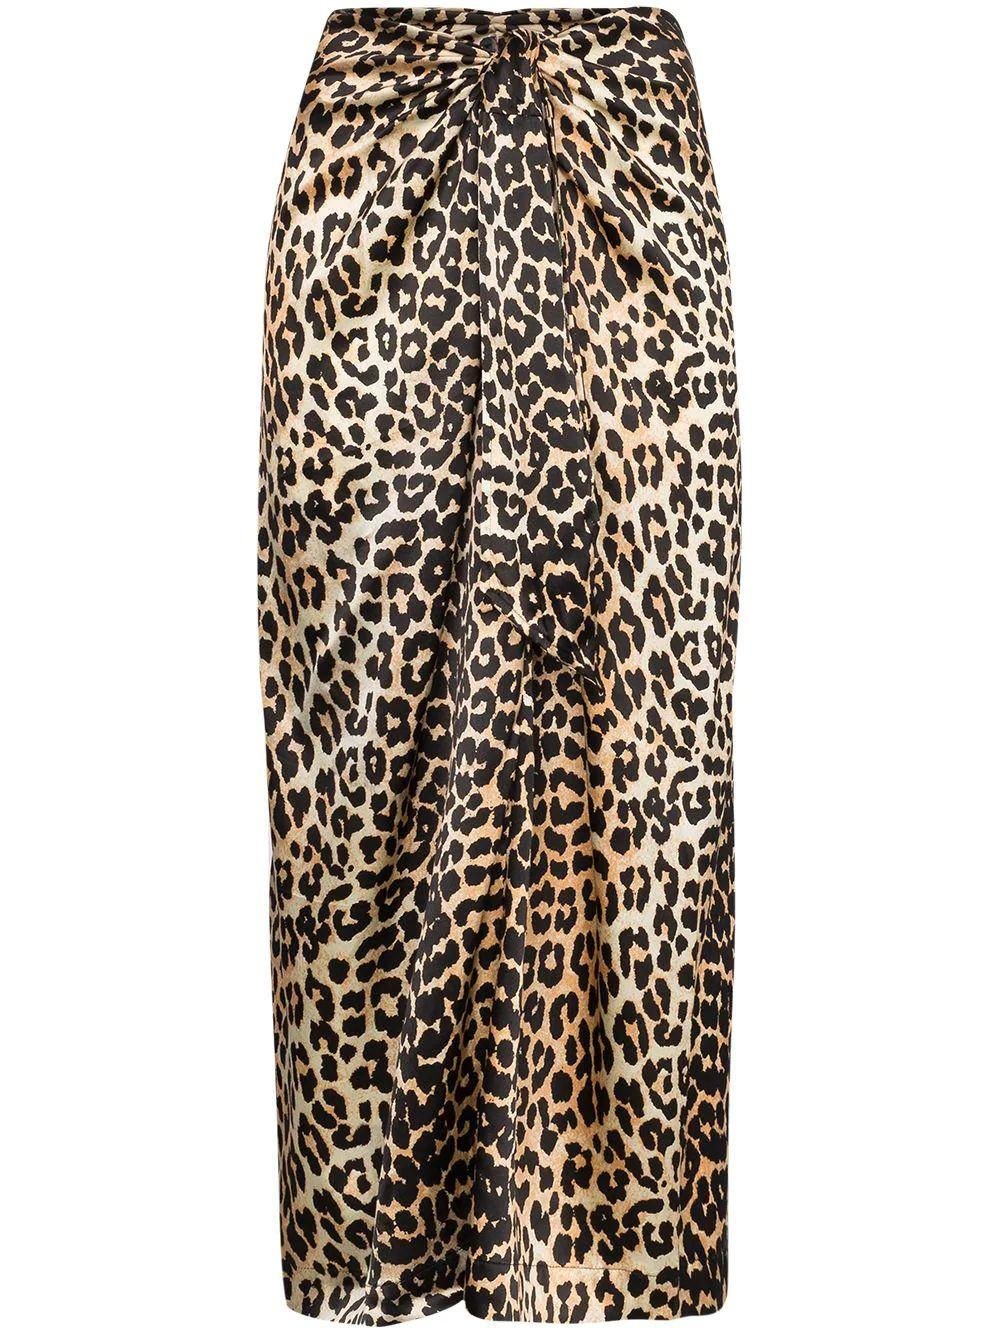 Silk Stretch Leopard Midi Skirt Item # F3654-R20